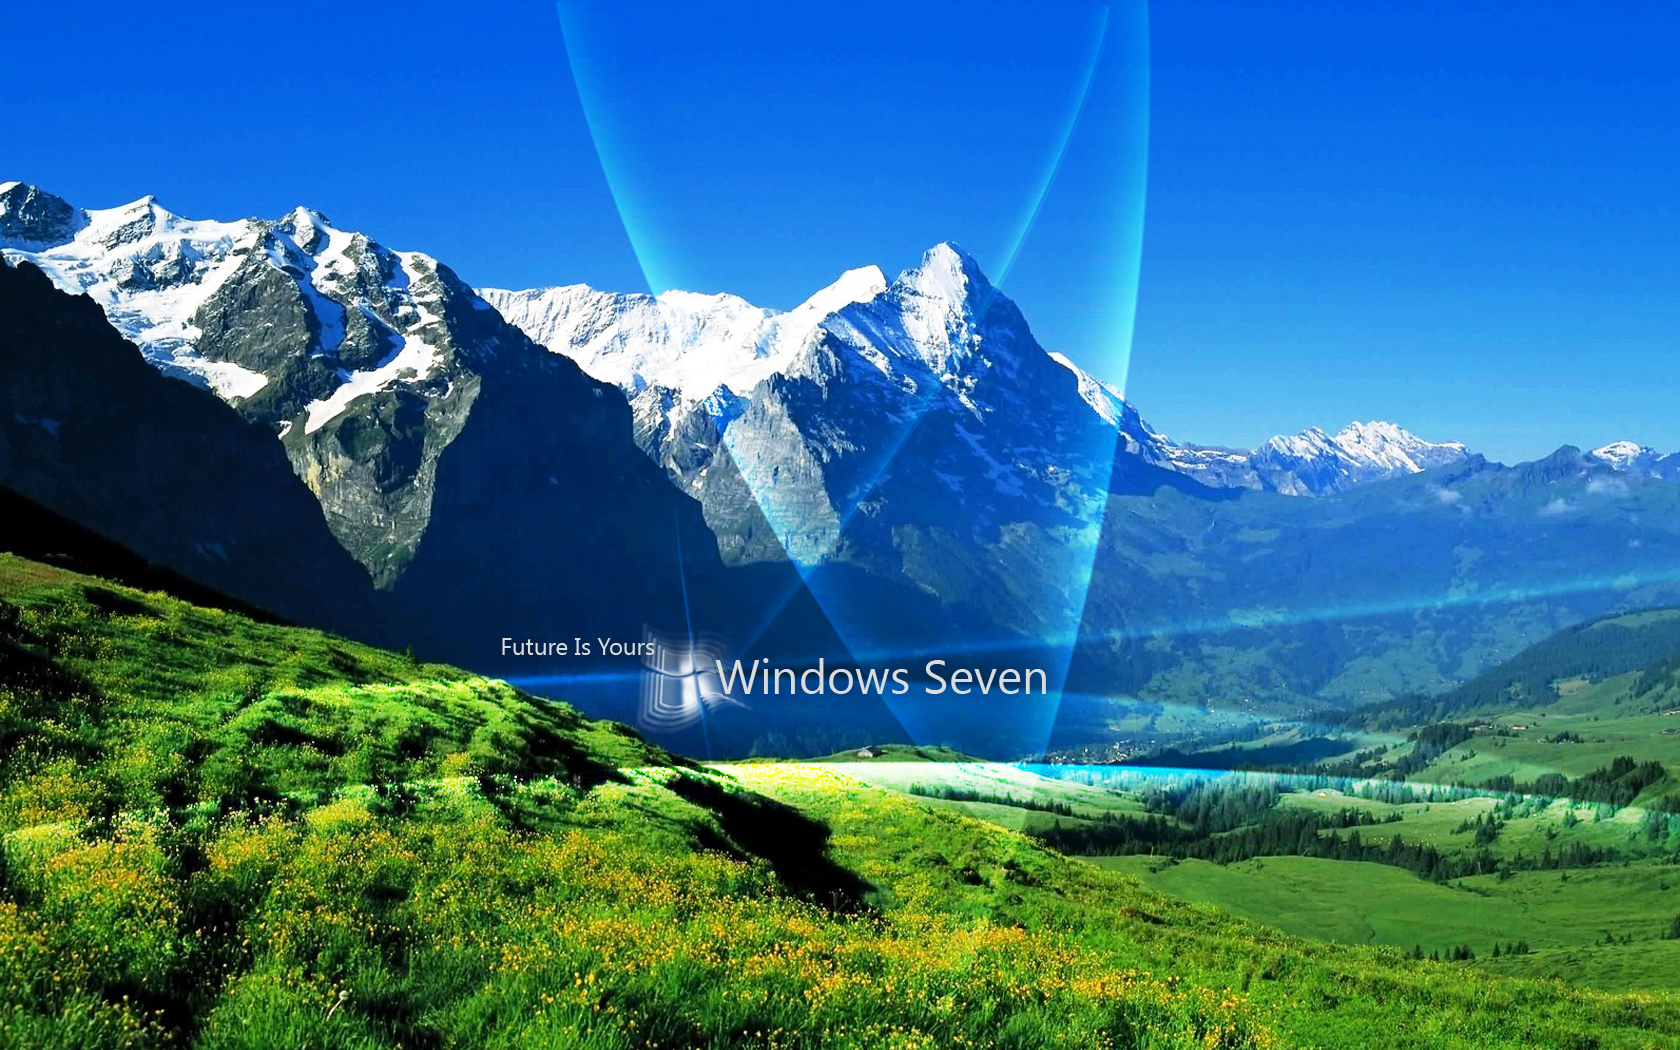 windows 7 seven future is yours wallpaper 1680x1050